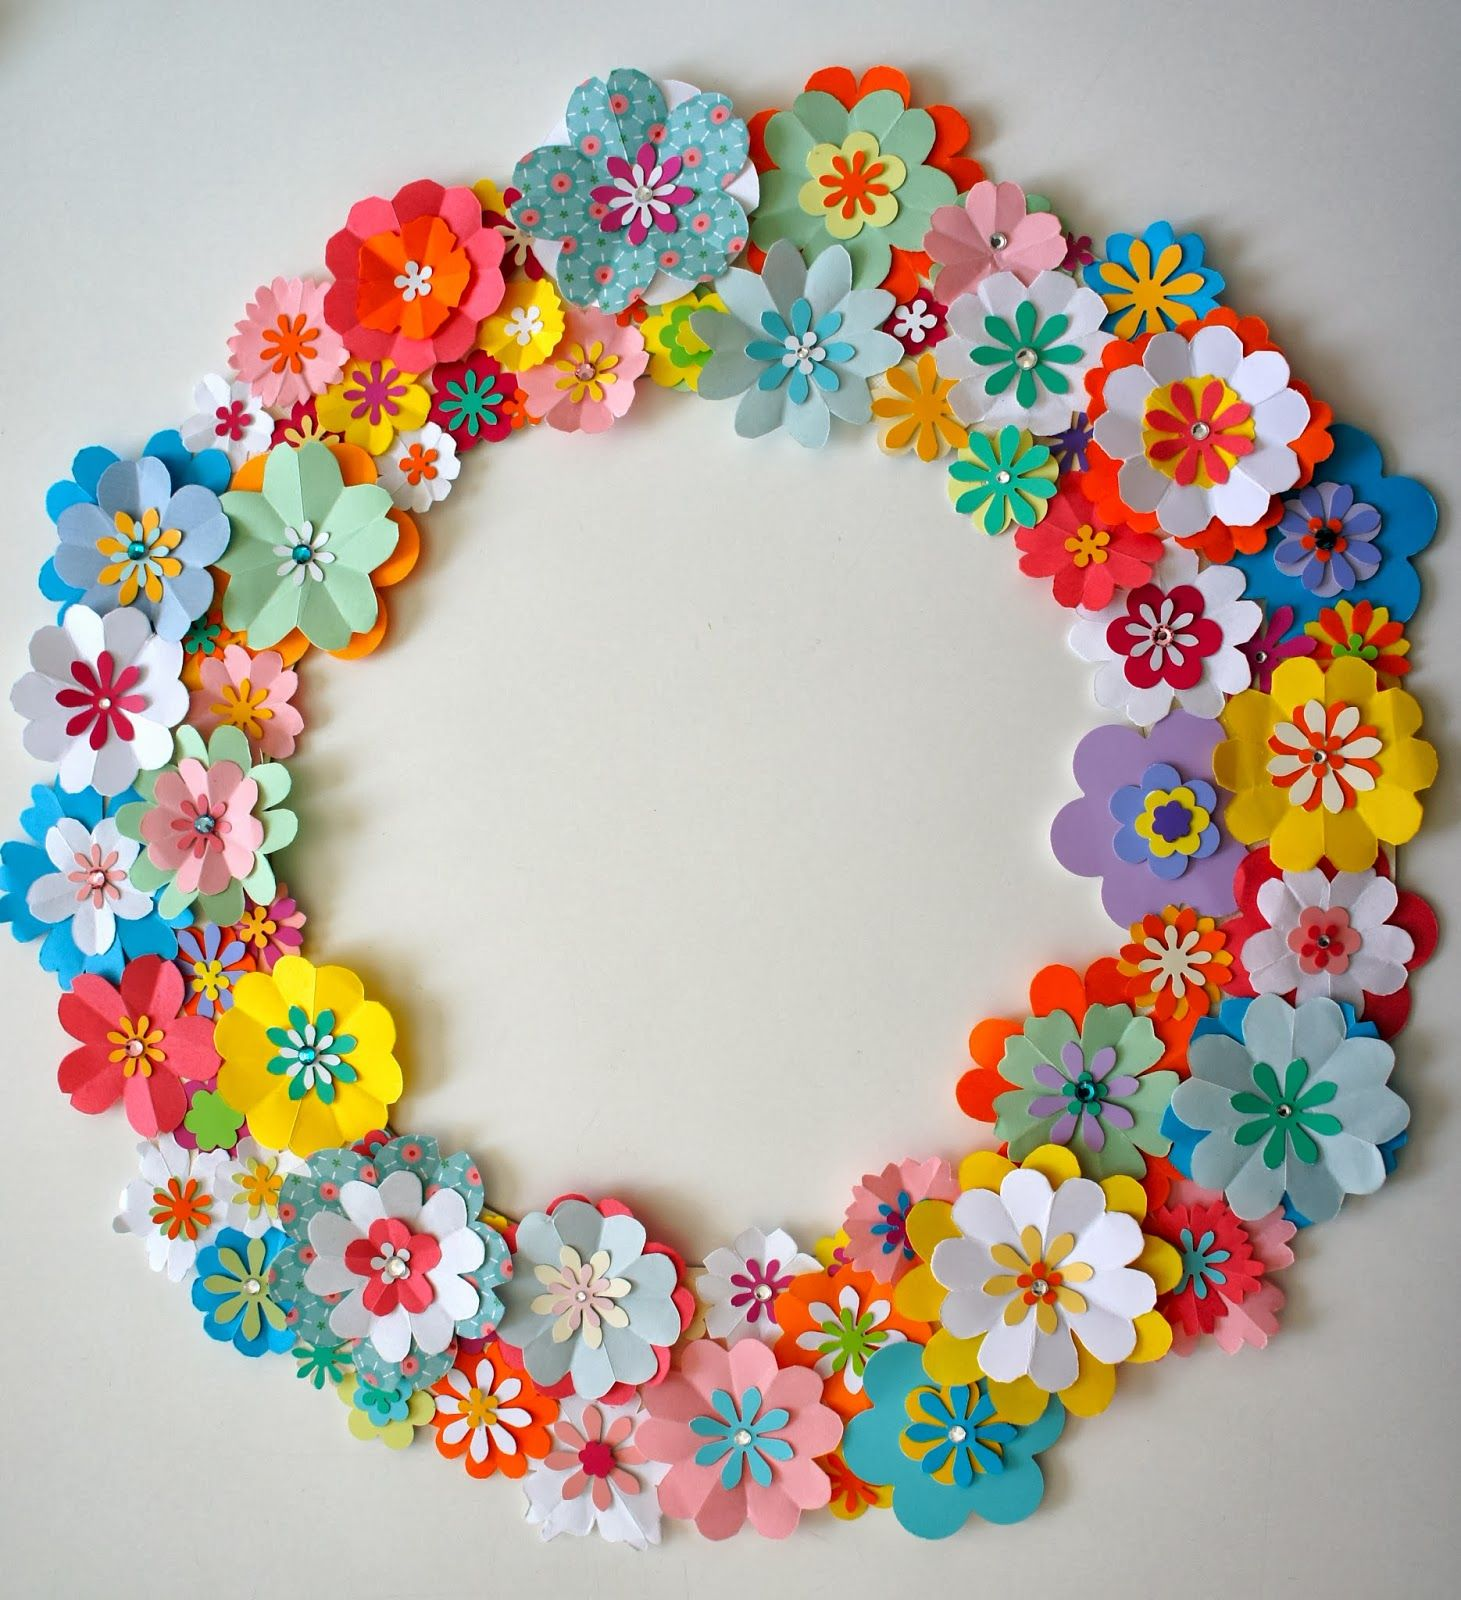 How to make beautiful paper dahlias diy crafts tutorial - Diy Paper Flower Spring Wreath With Tutorial Link Ideas From The Forest